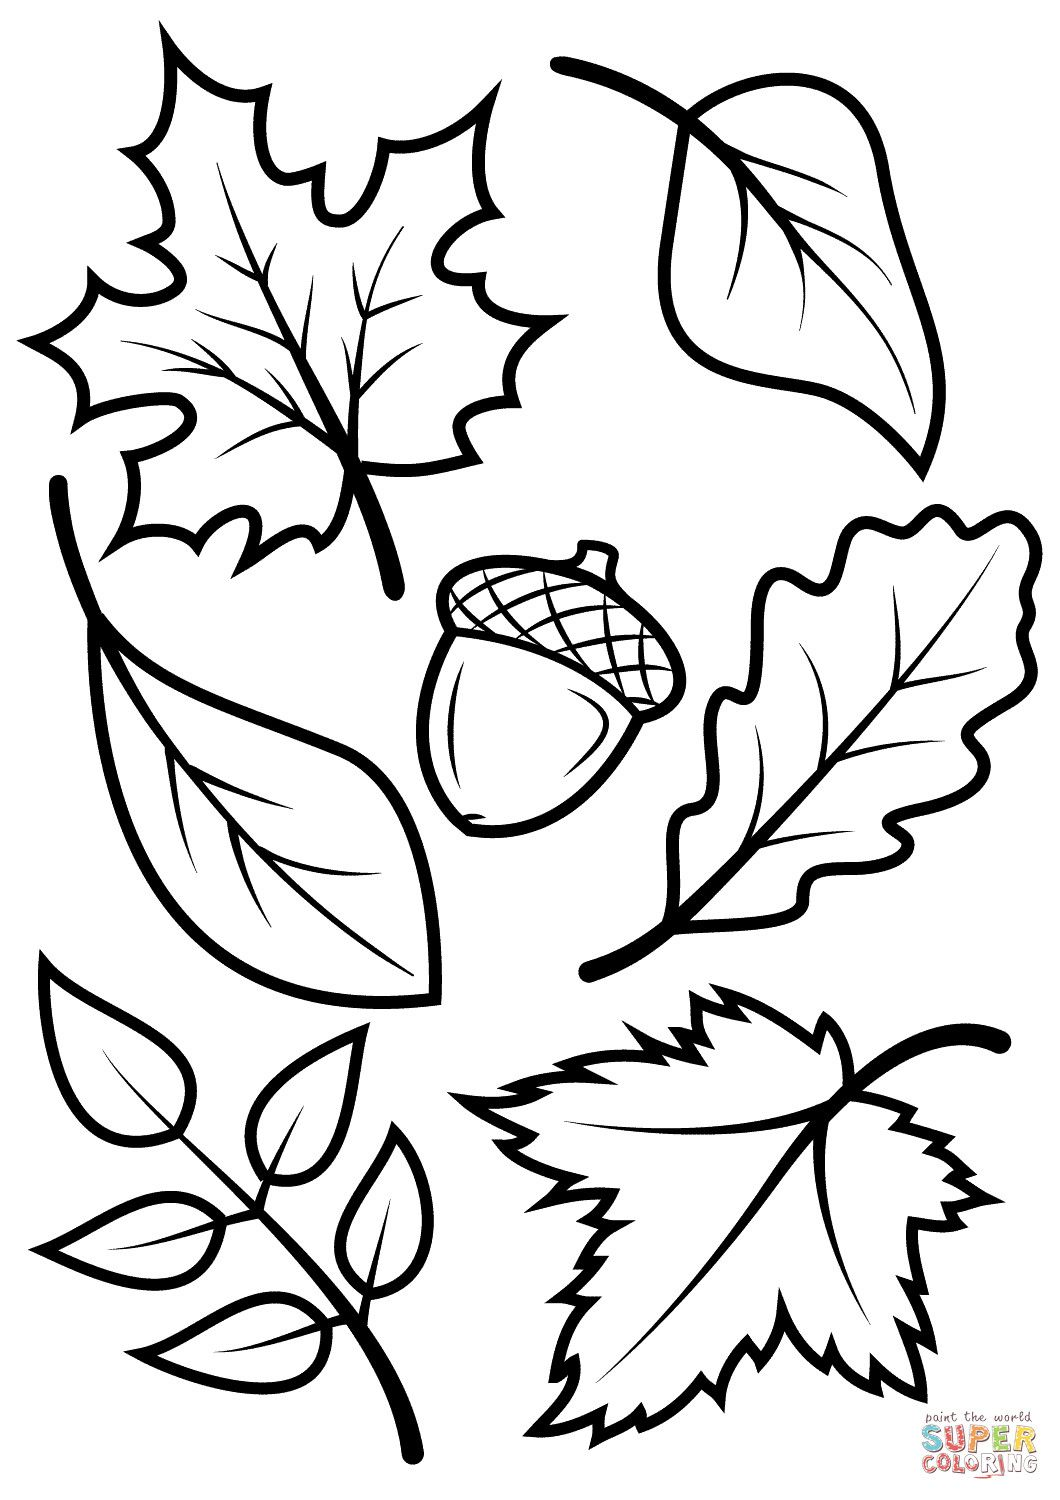 New leaf pictures to color fall leaves and acorn coloring page free